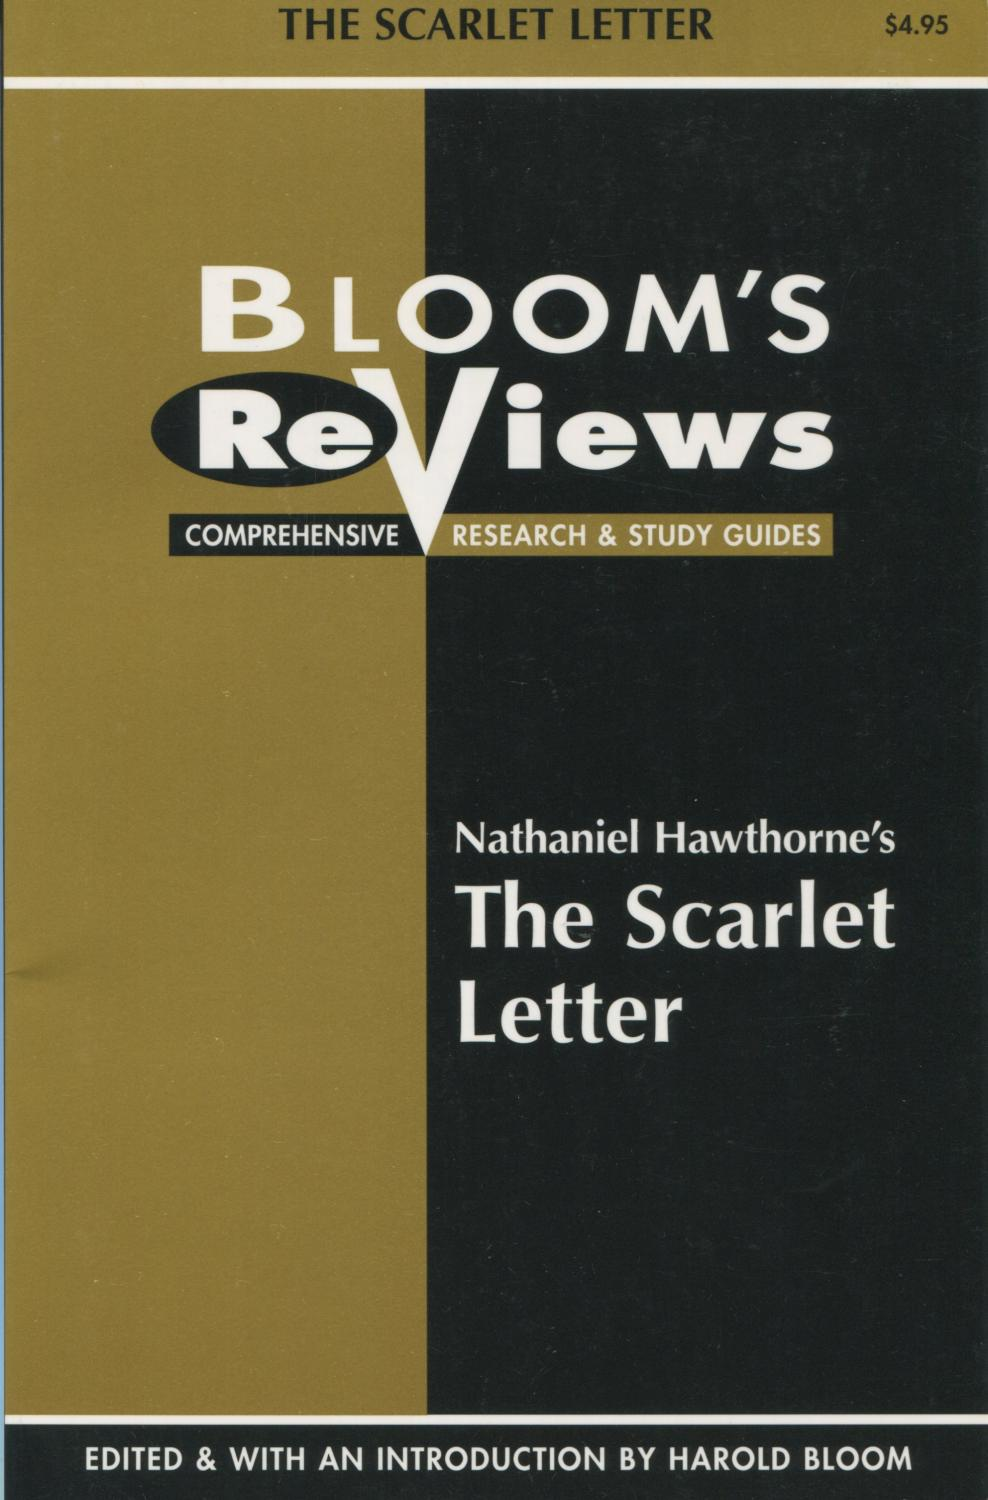 a literary analysis of the characters in the scarlet letter by nathaniel hawthorne Look through our guide for literary analysis outline on the scarlet letter it will give your literary analysis all the necessary qualities for a good grade.